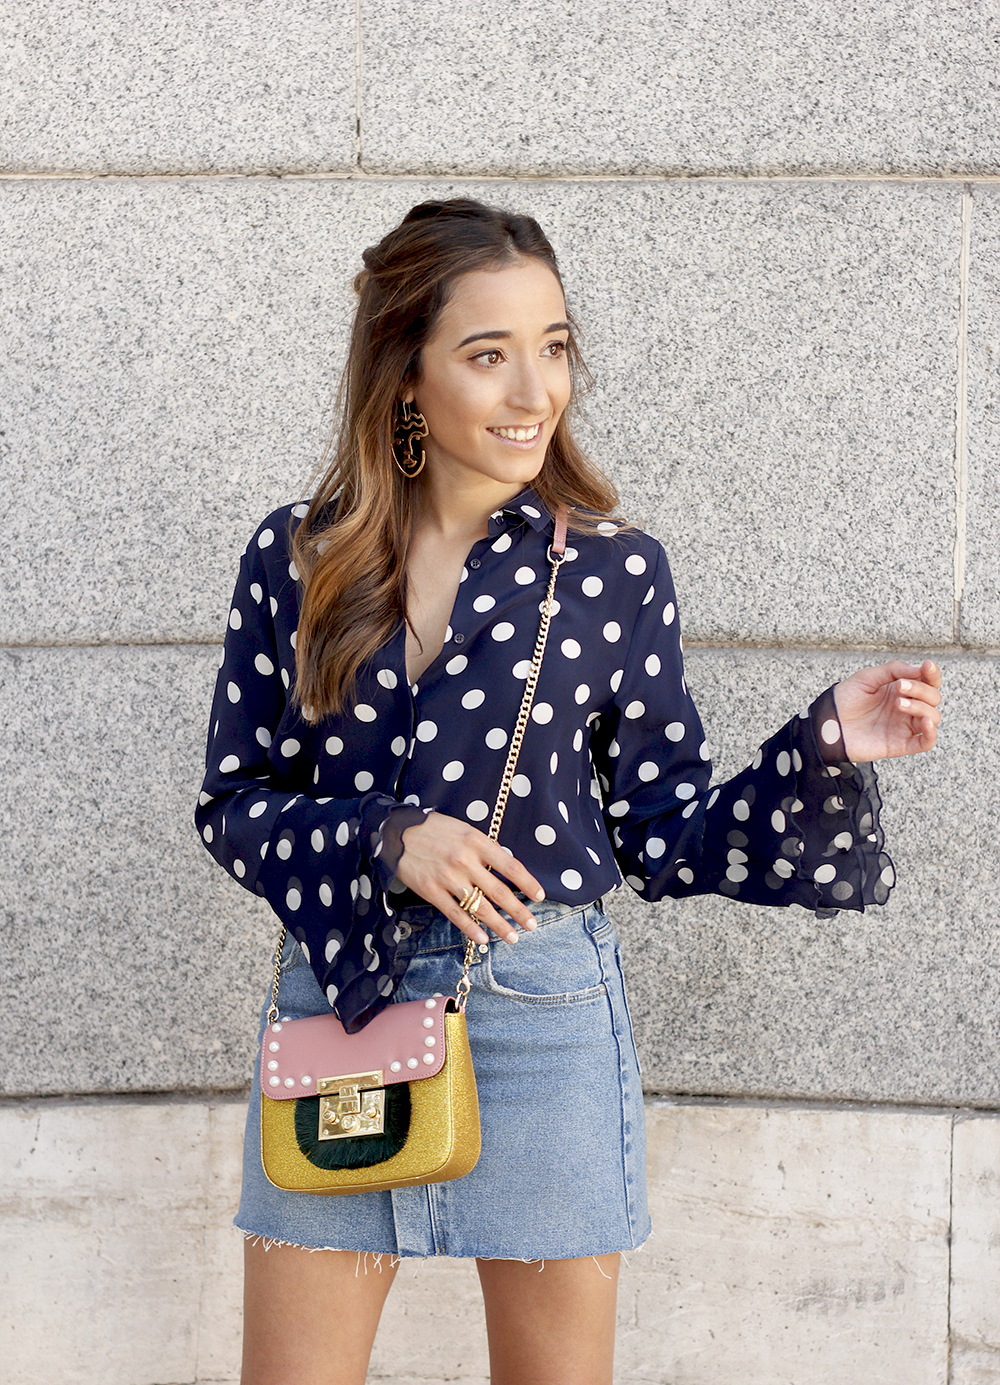 Polka dots shirt uterqüe bolso denim skirt girl outfit fashion10